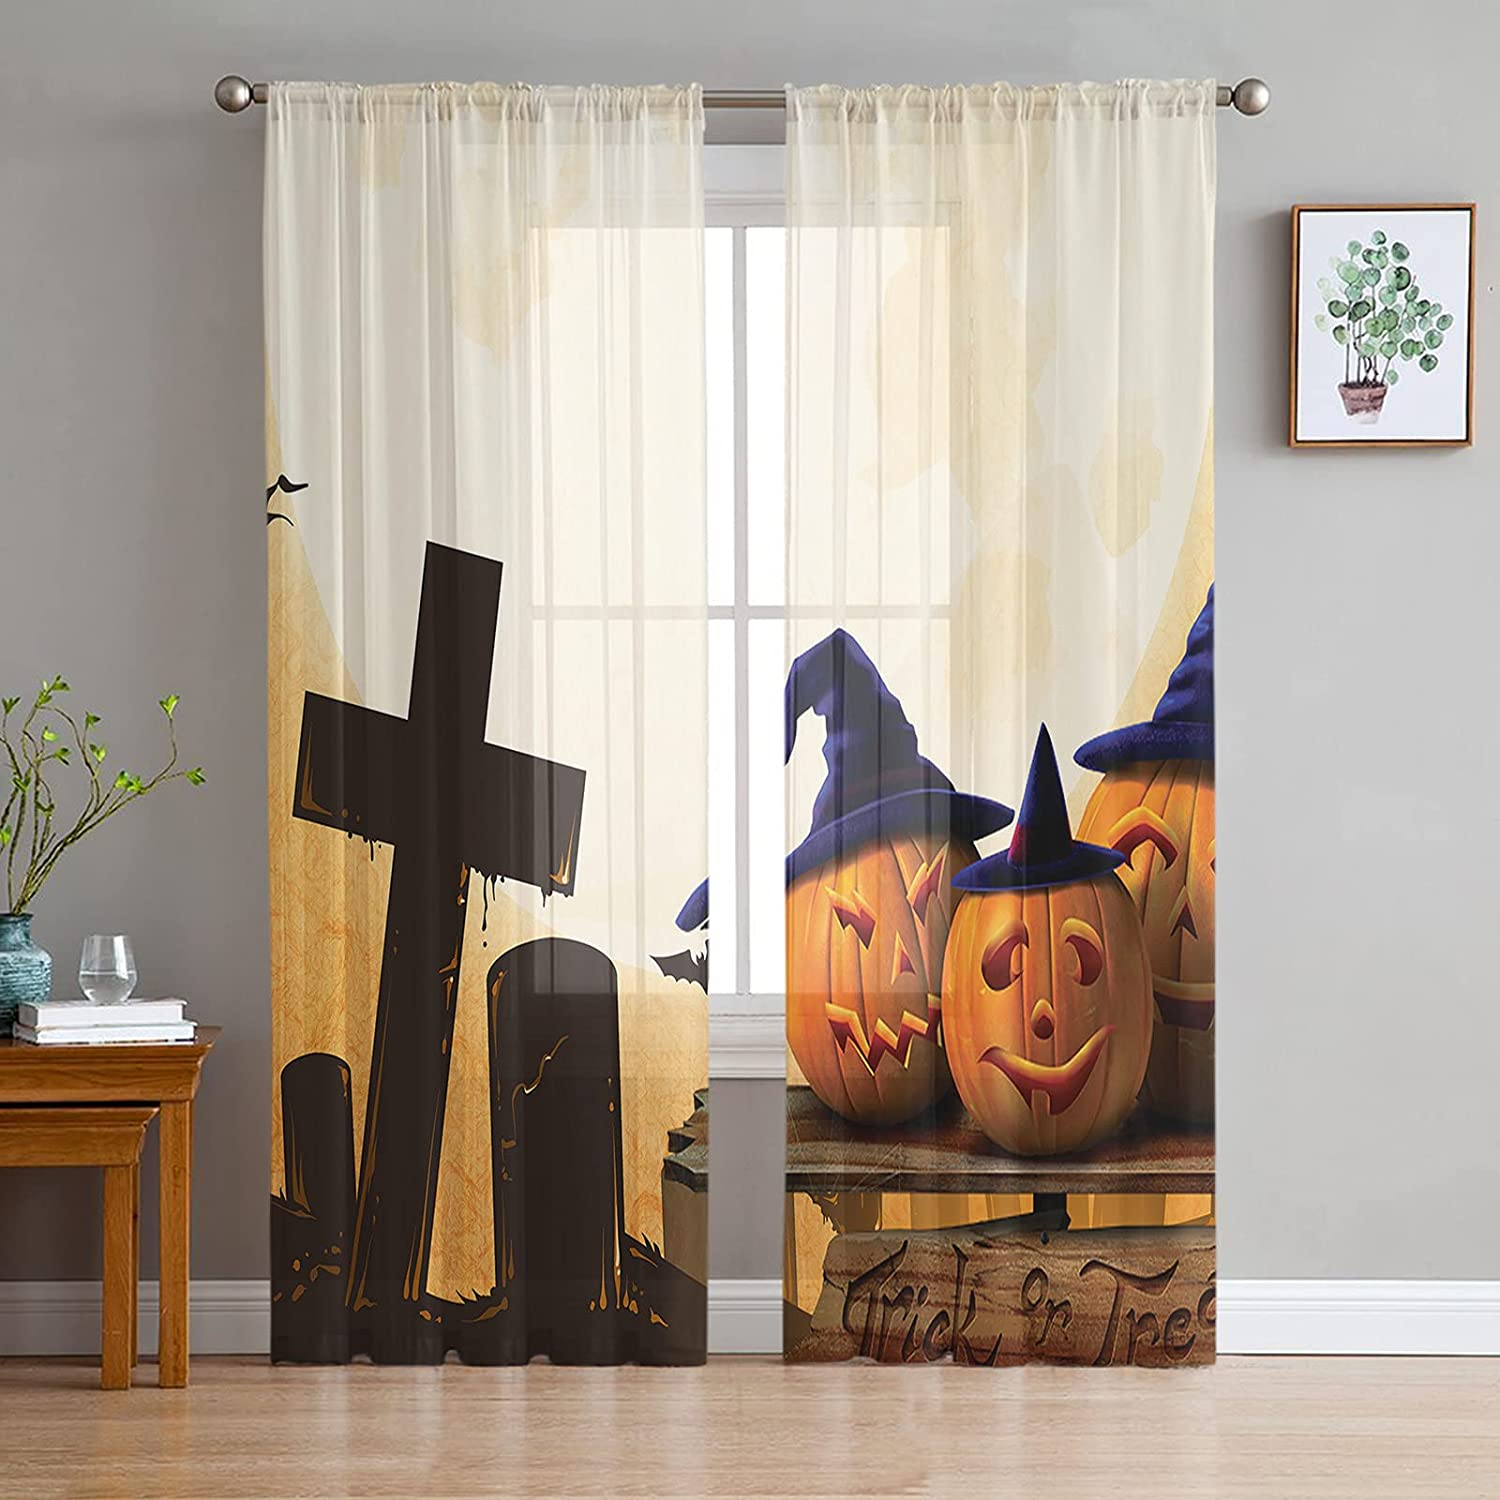 Semi Sheer Voile Cheap mail order shopping Window Curtains Large special price !! 2 Ele Inches Panels 52x63 Long